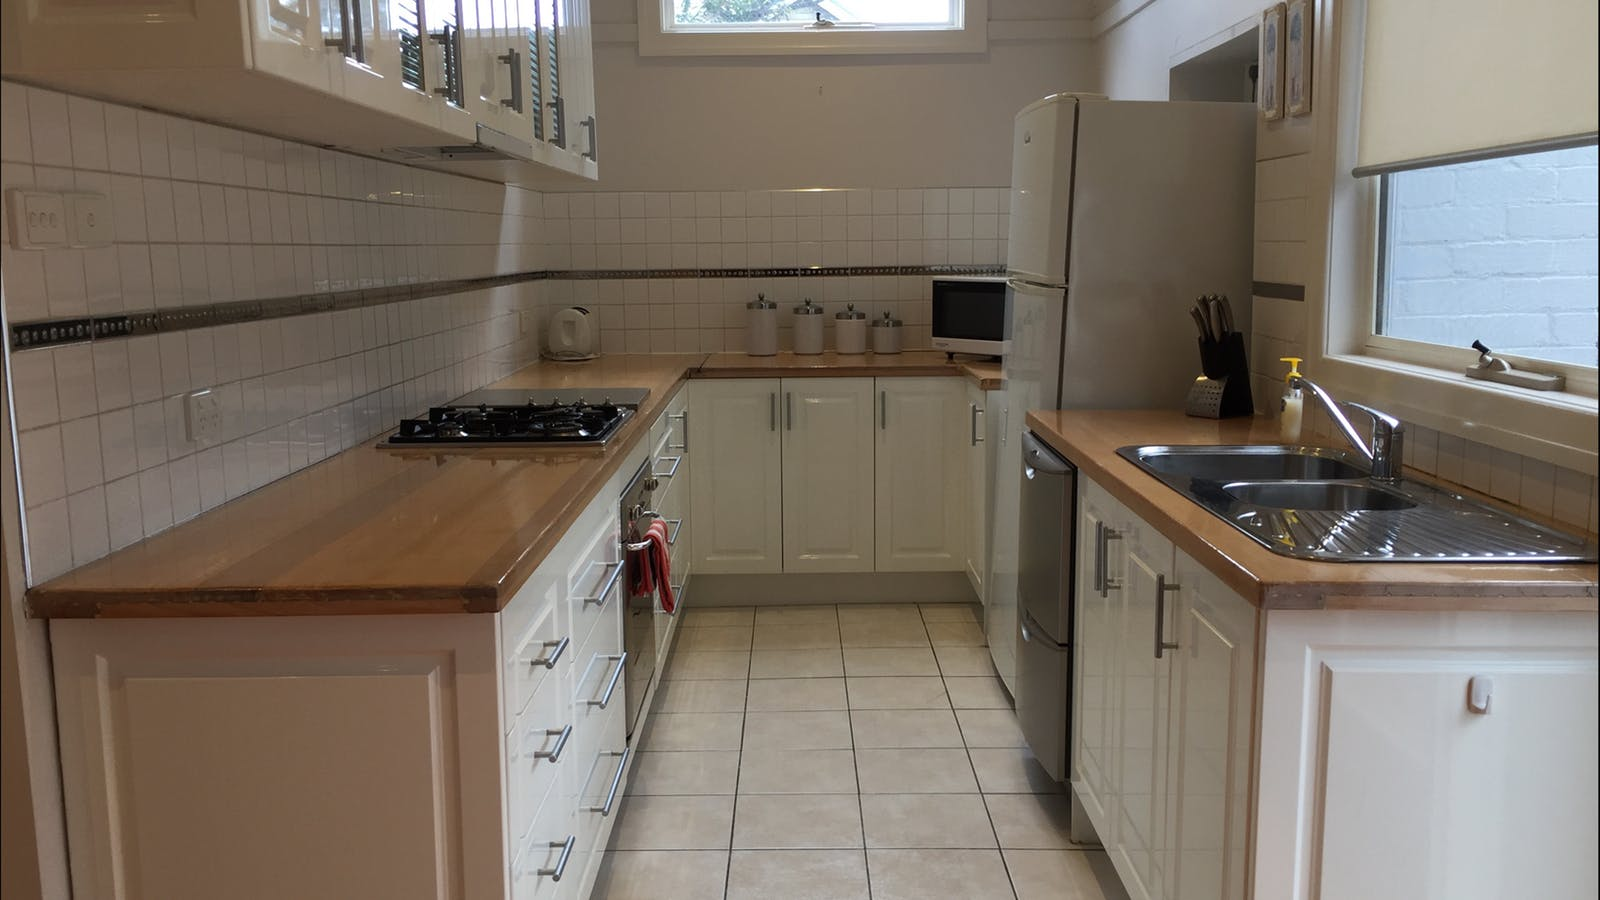 Full kitchen with microwave, dishwasher, oven, stove and all the essentials